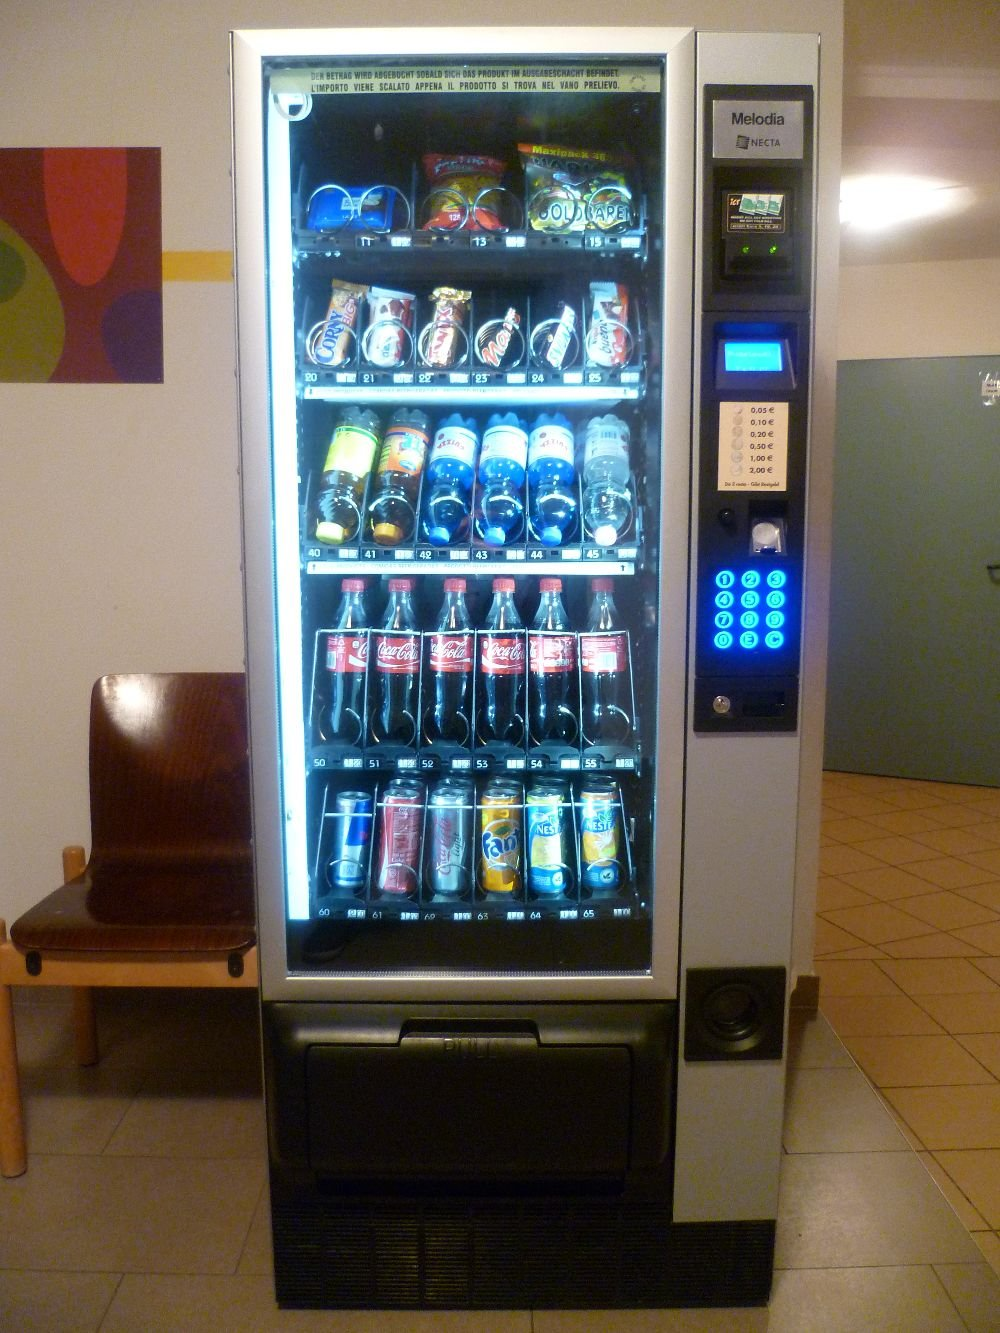 Vending machines for snacks